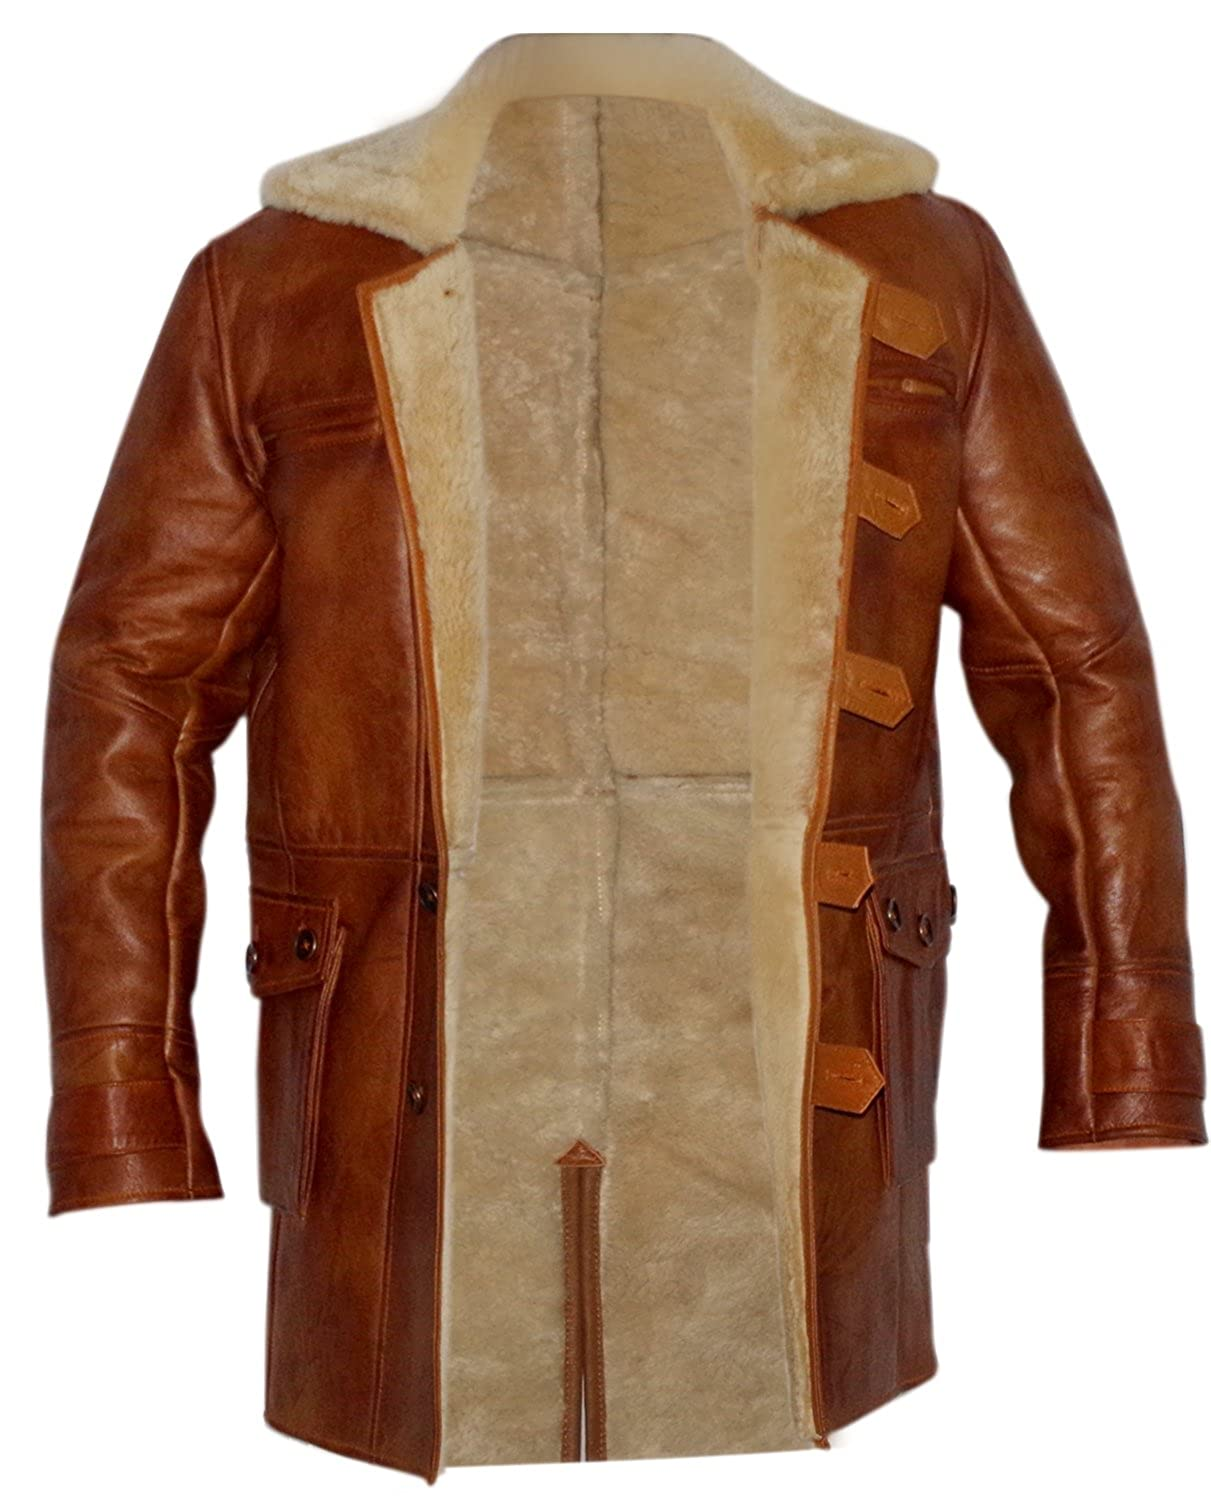 ada672a2ef9 Sheepskin Leather with Heavy and Soft Real Shearling Fur Lining Importado  Button closure. Made with Pre Loved Shearling